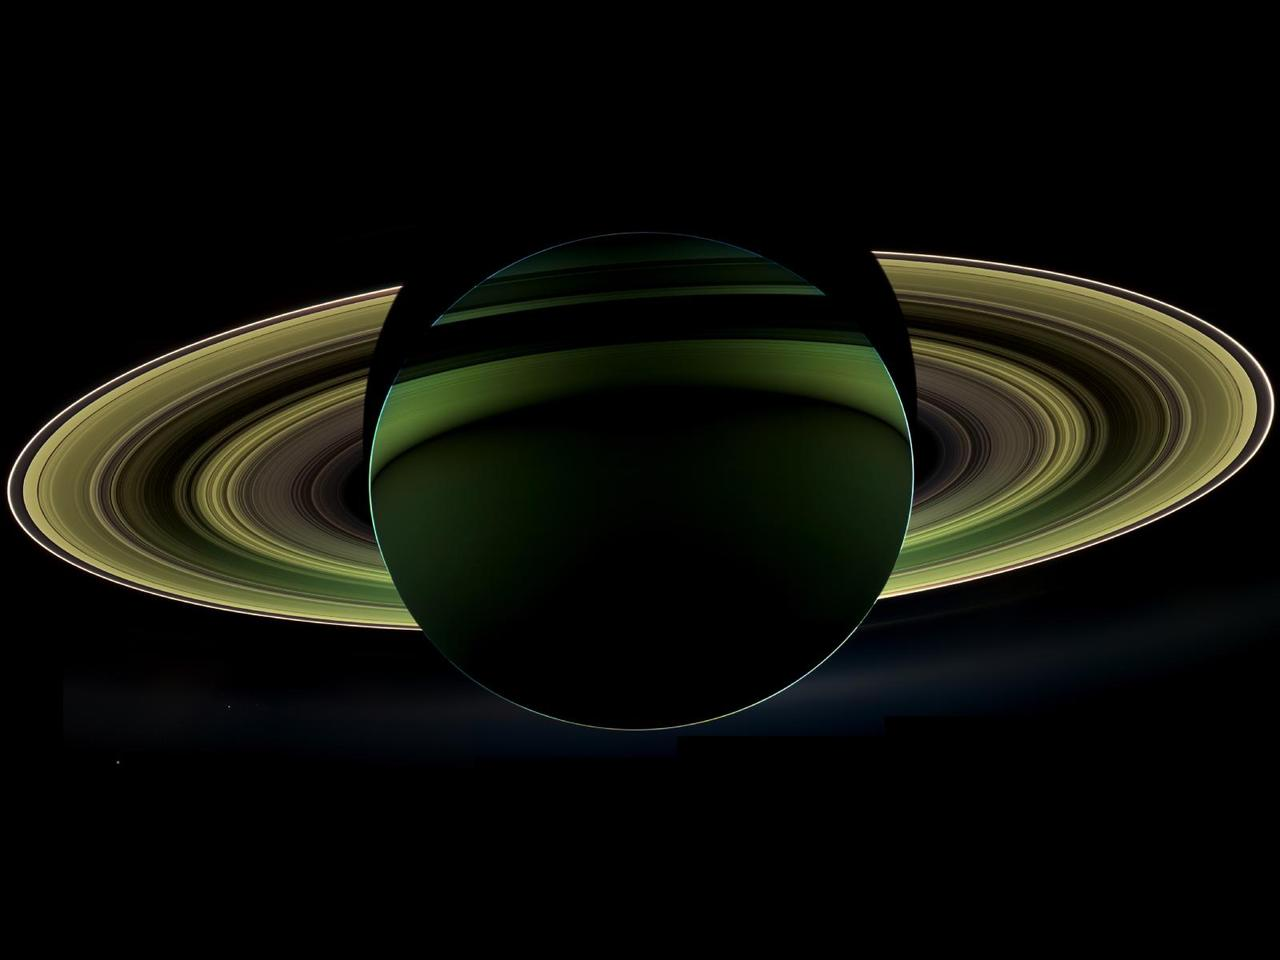 Image description: NASA's Cassini spacecraft delivered this view of Saturn while the spacecraft was in the planet's shadow. Learn more about this view of Saturn. Image from NASA/JPL-Caltech/Space Science Institute